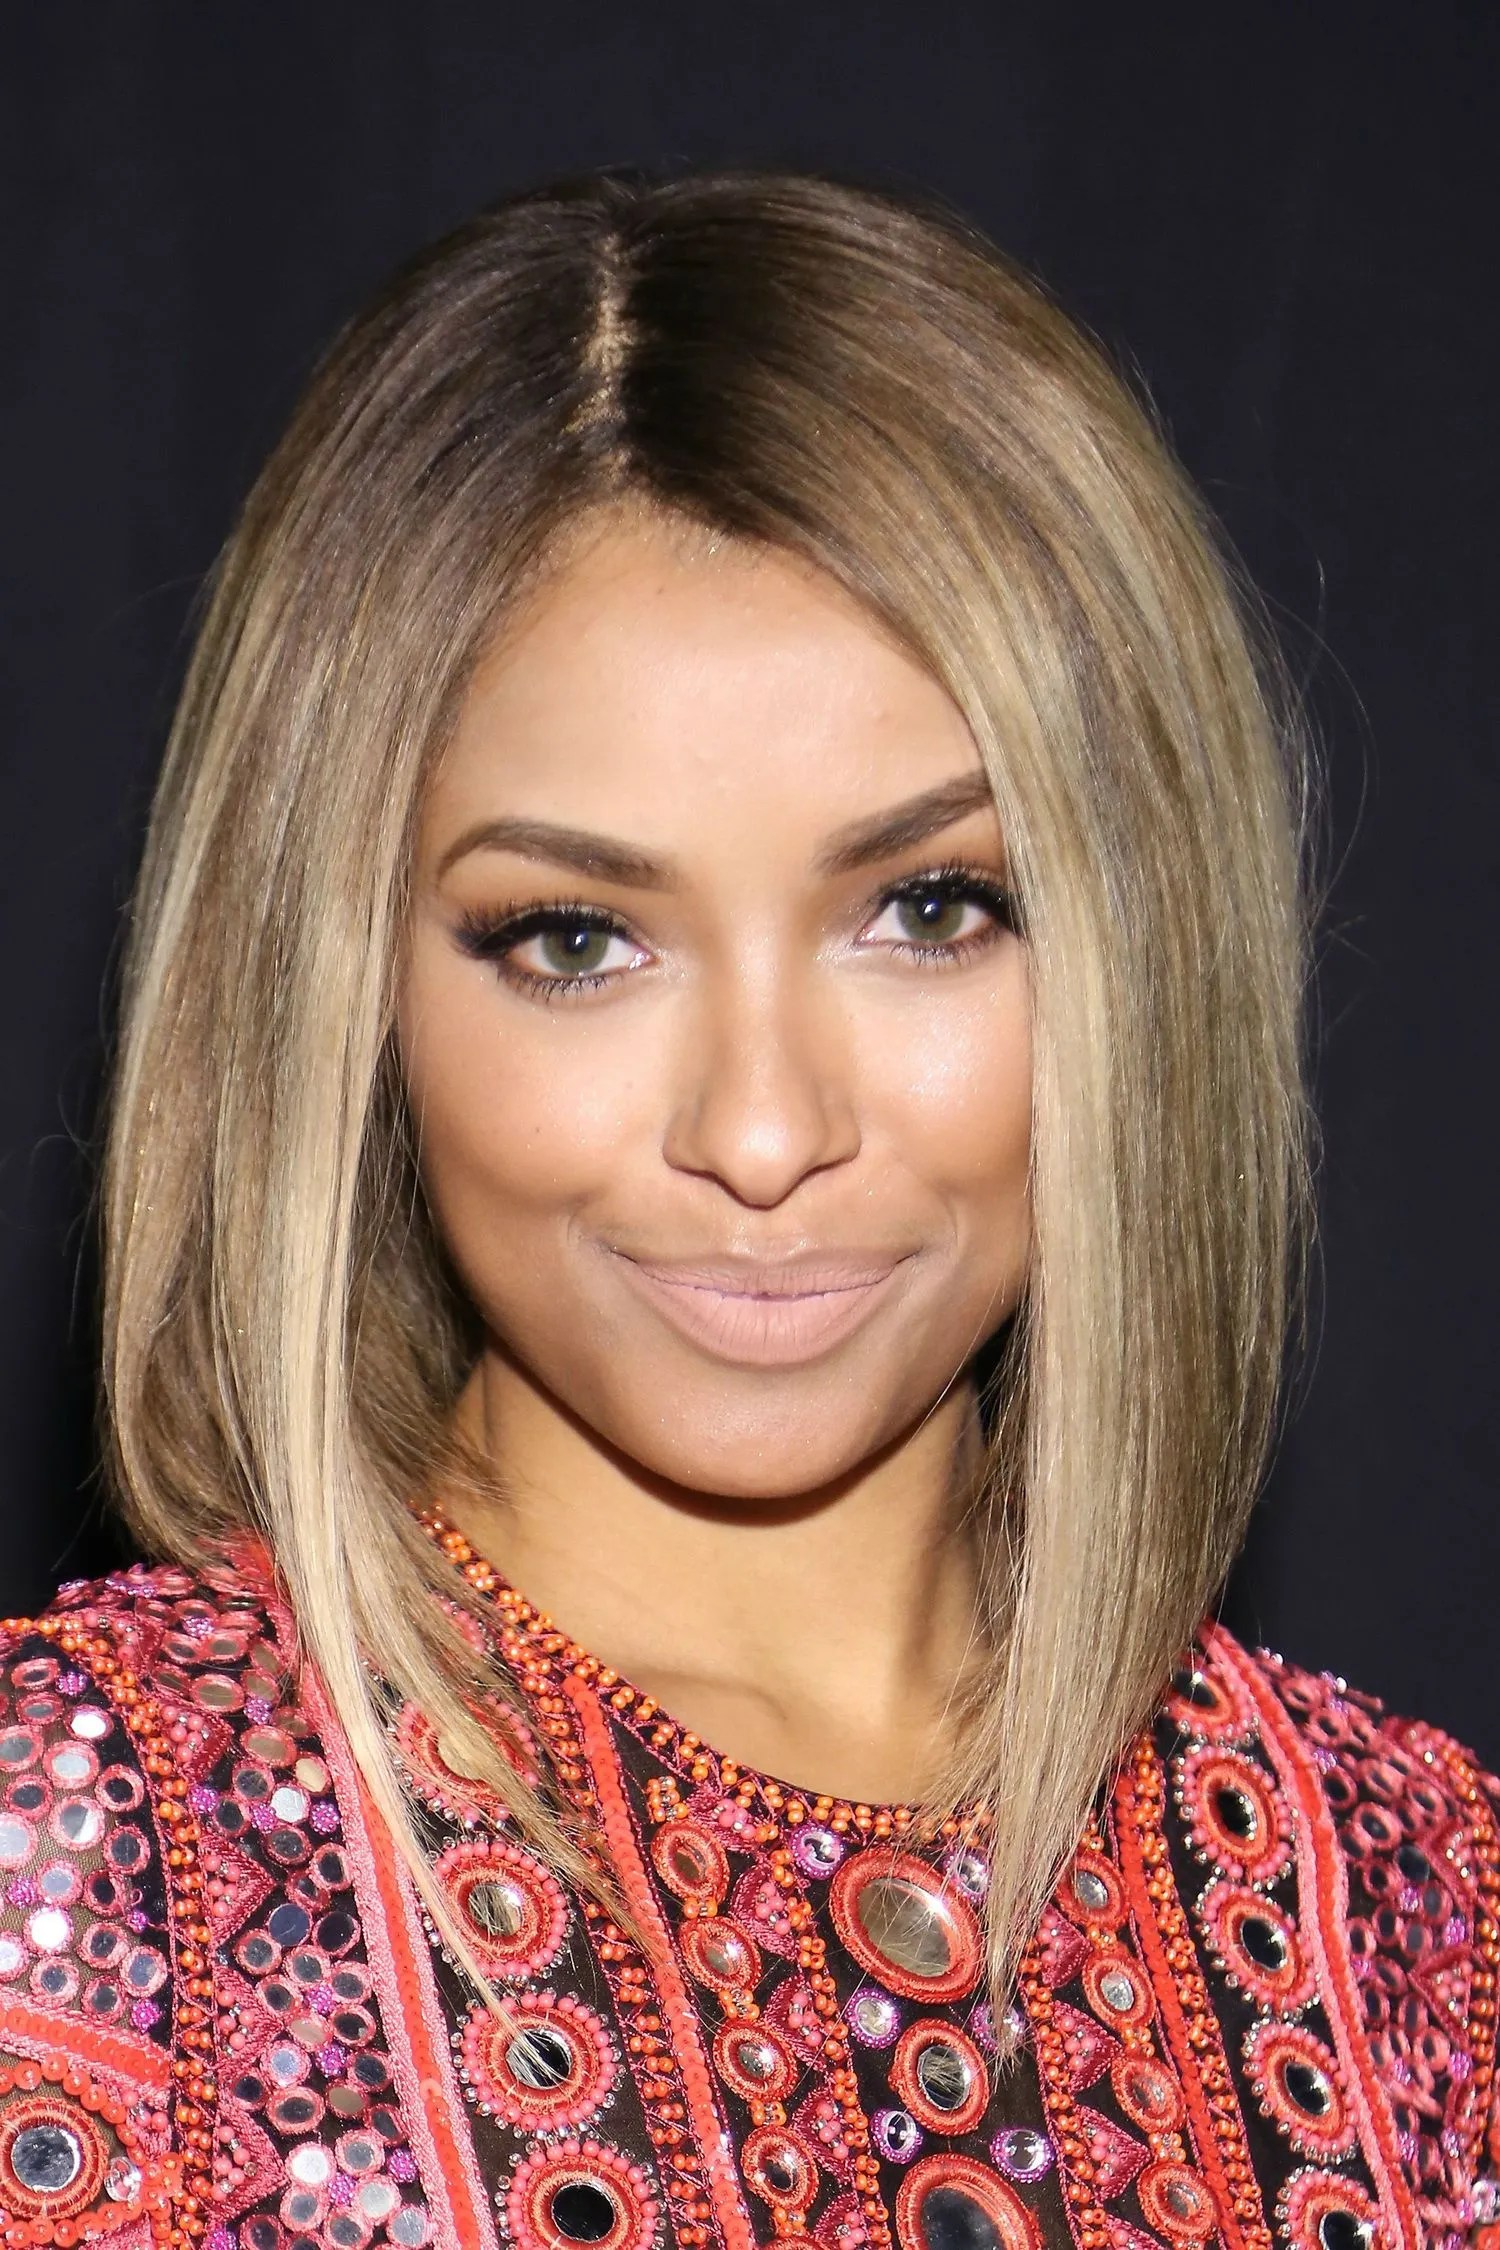 21 Fall Haircut Ideas To Get You Out Of Your Style Rut